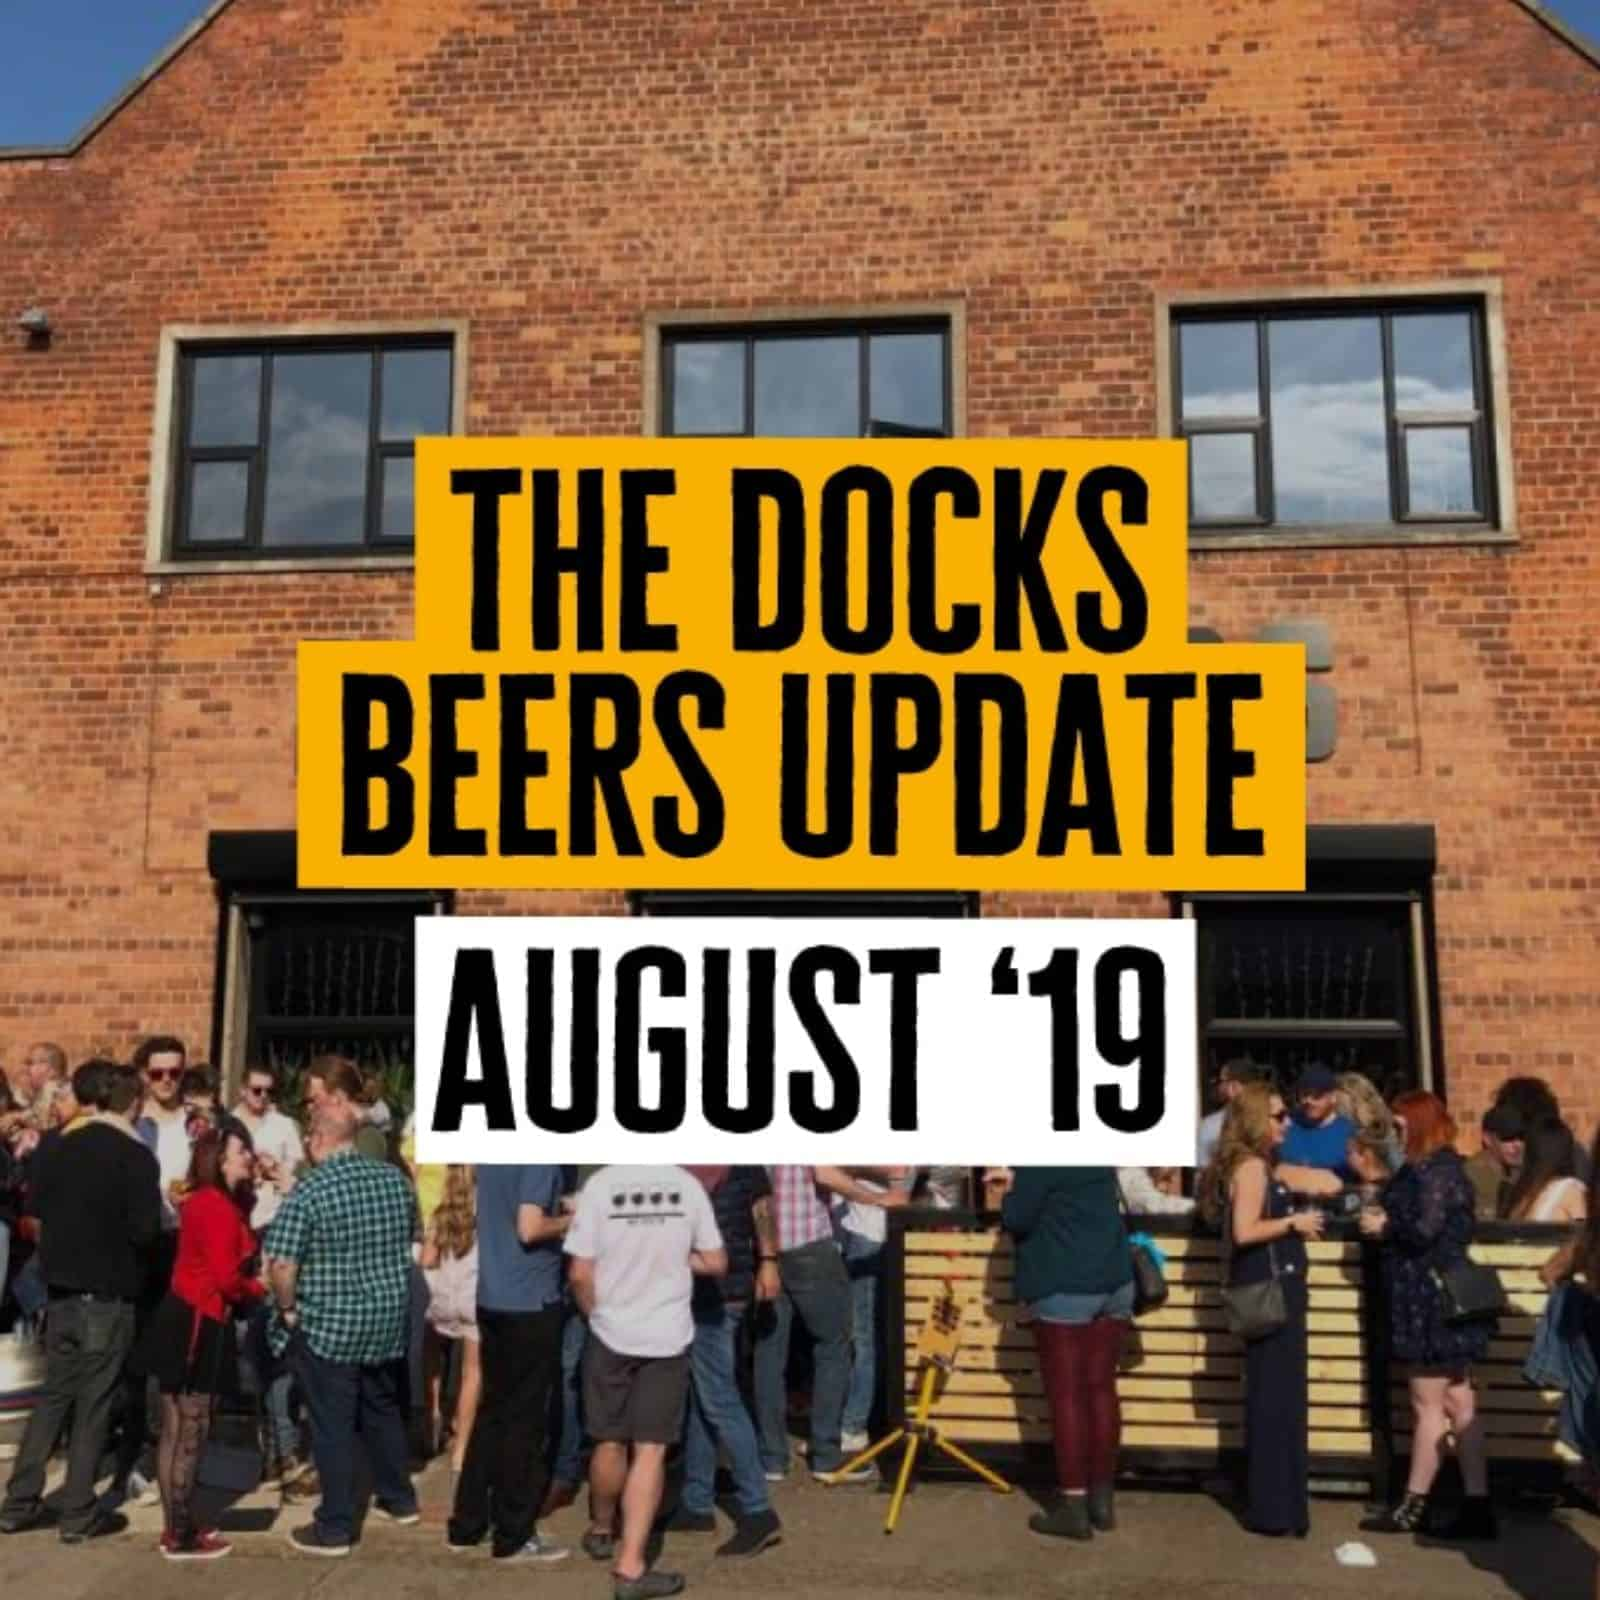 Docks Beers August Update